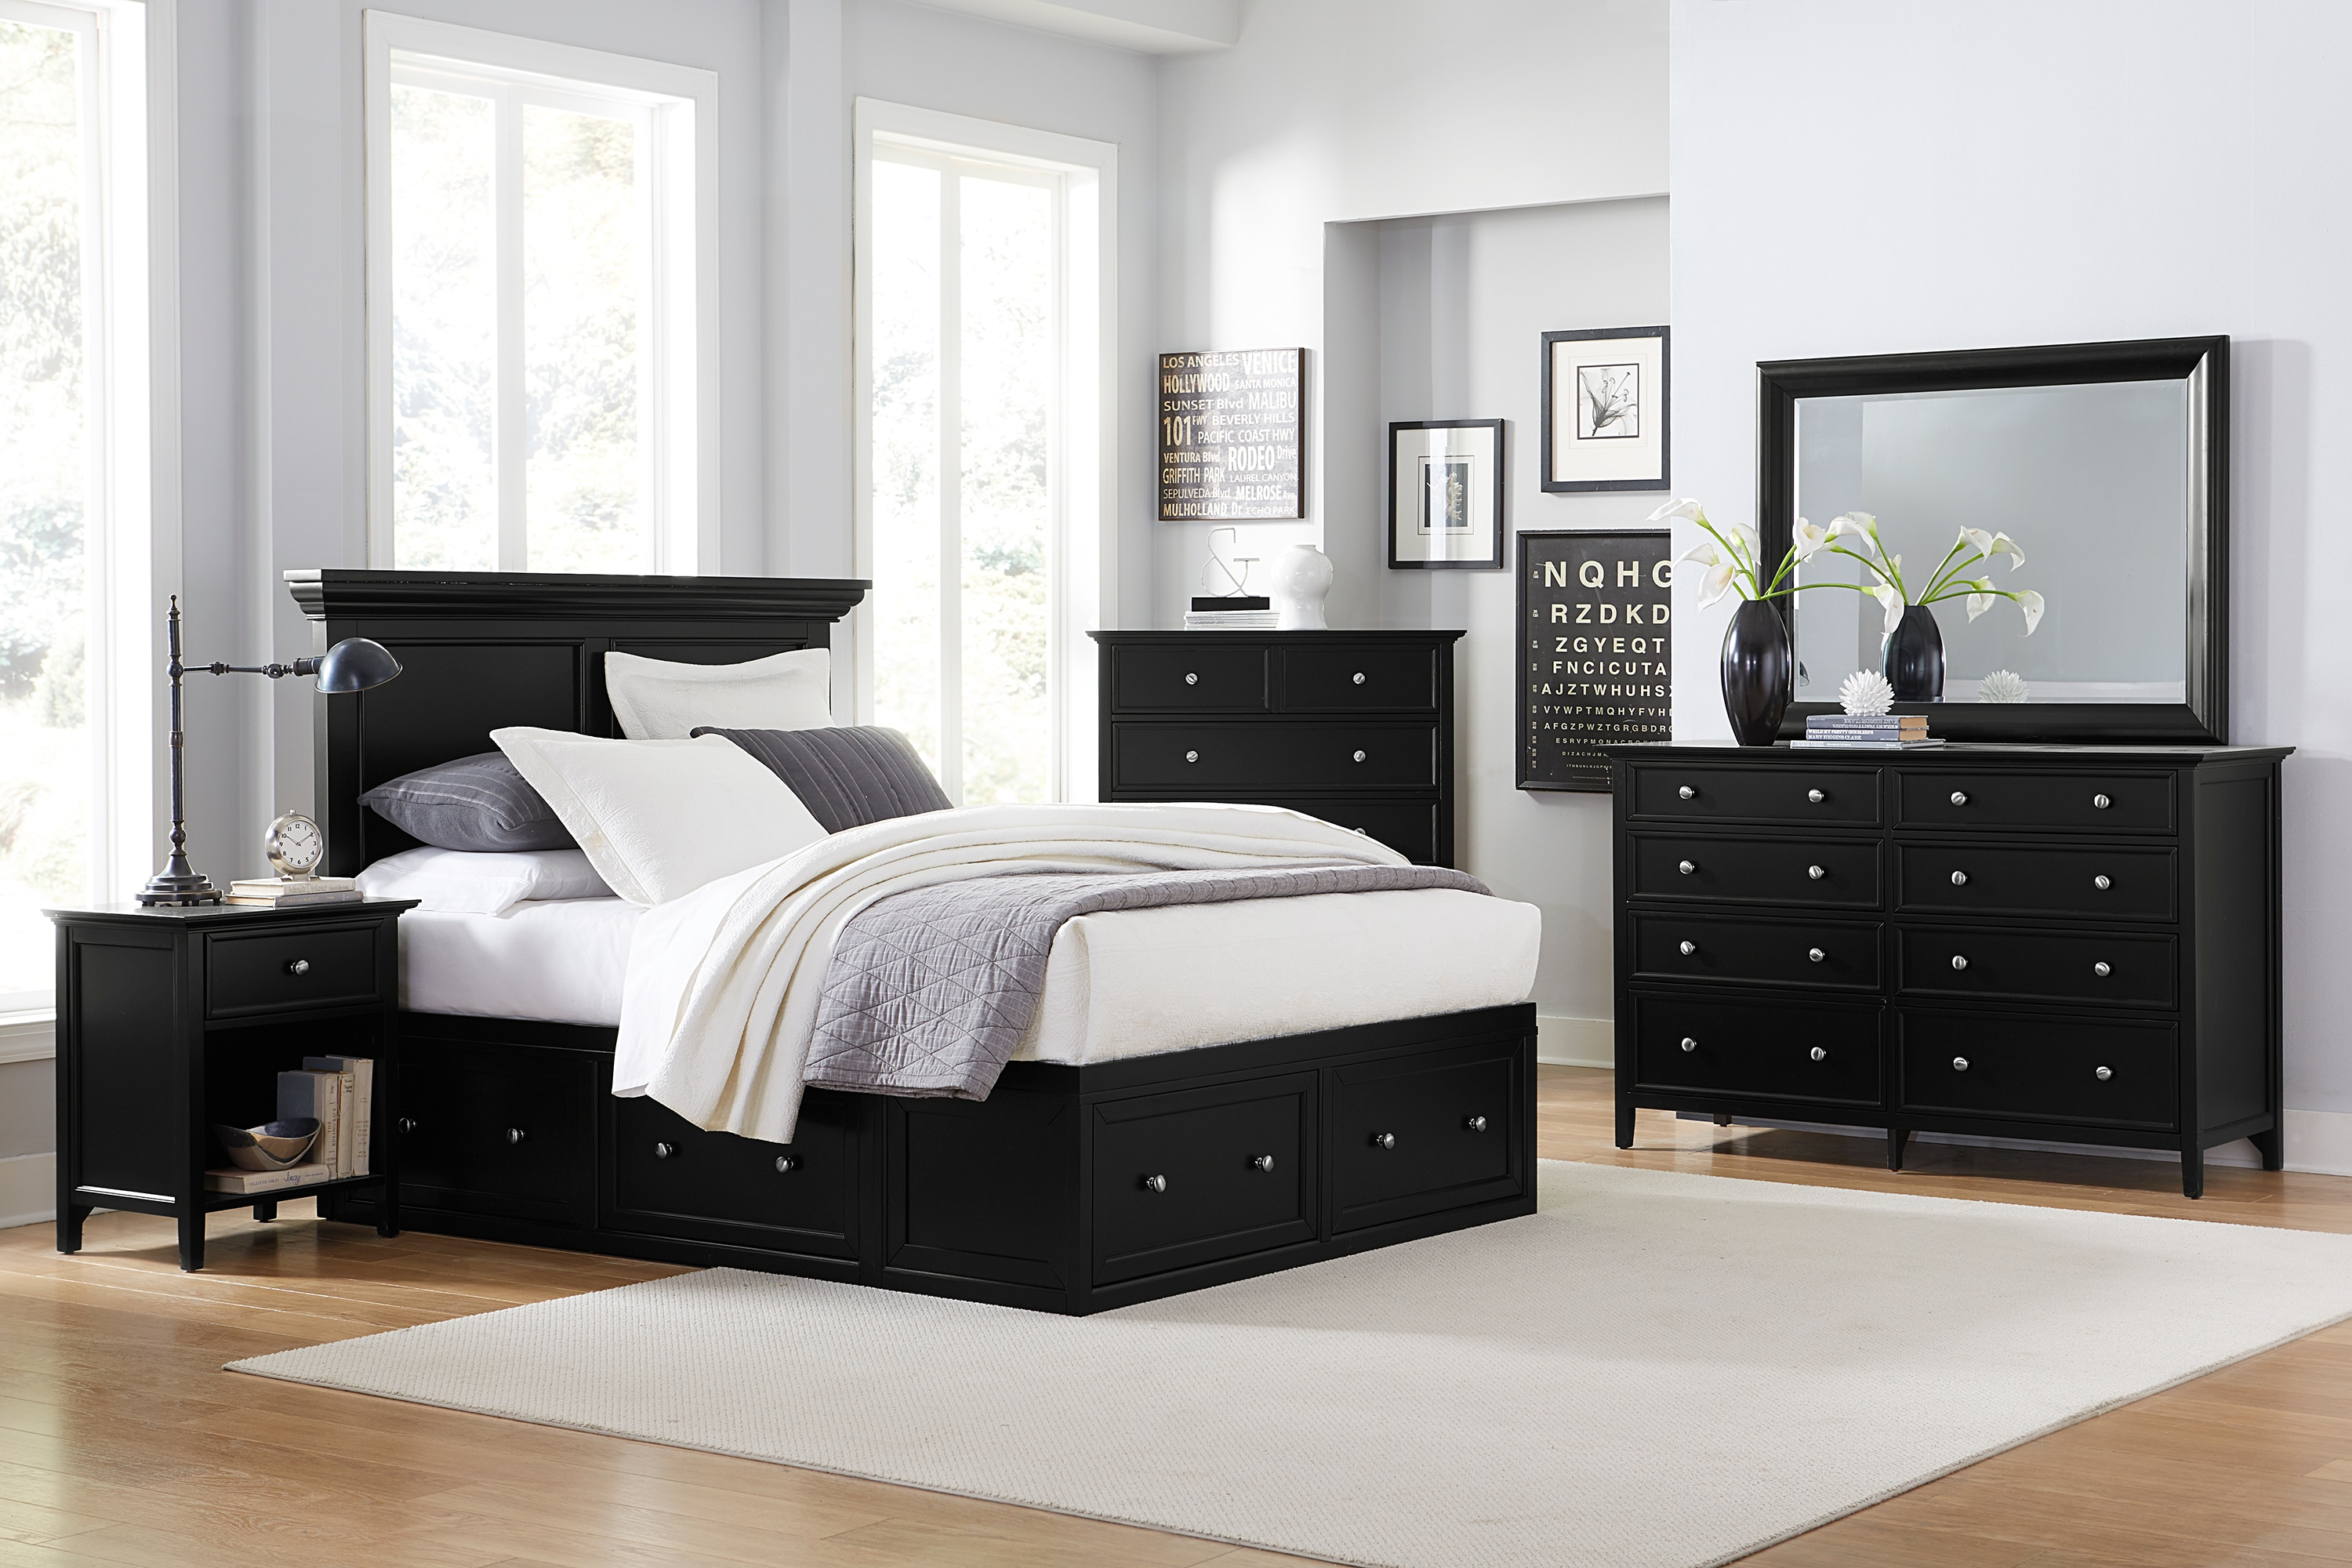 ellsworth 4 piece king storage bedroom set black levin 12080 | 539886